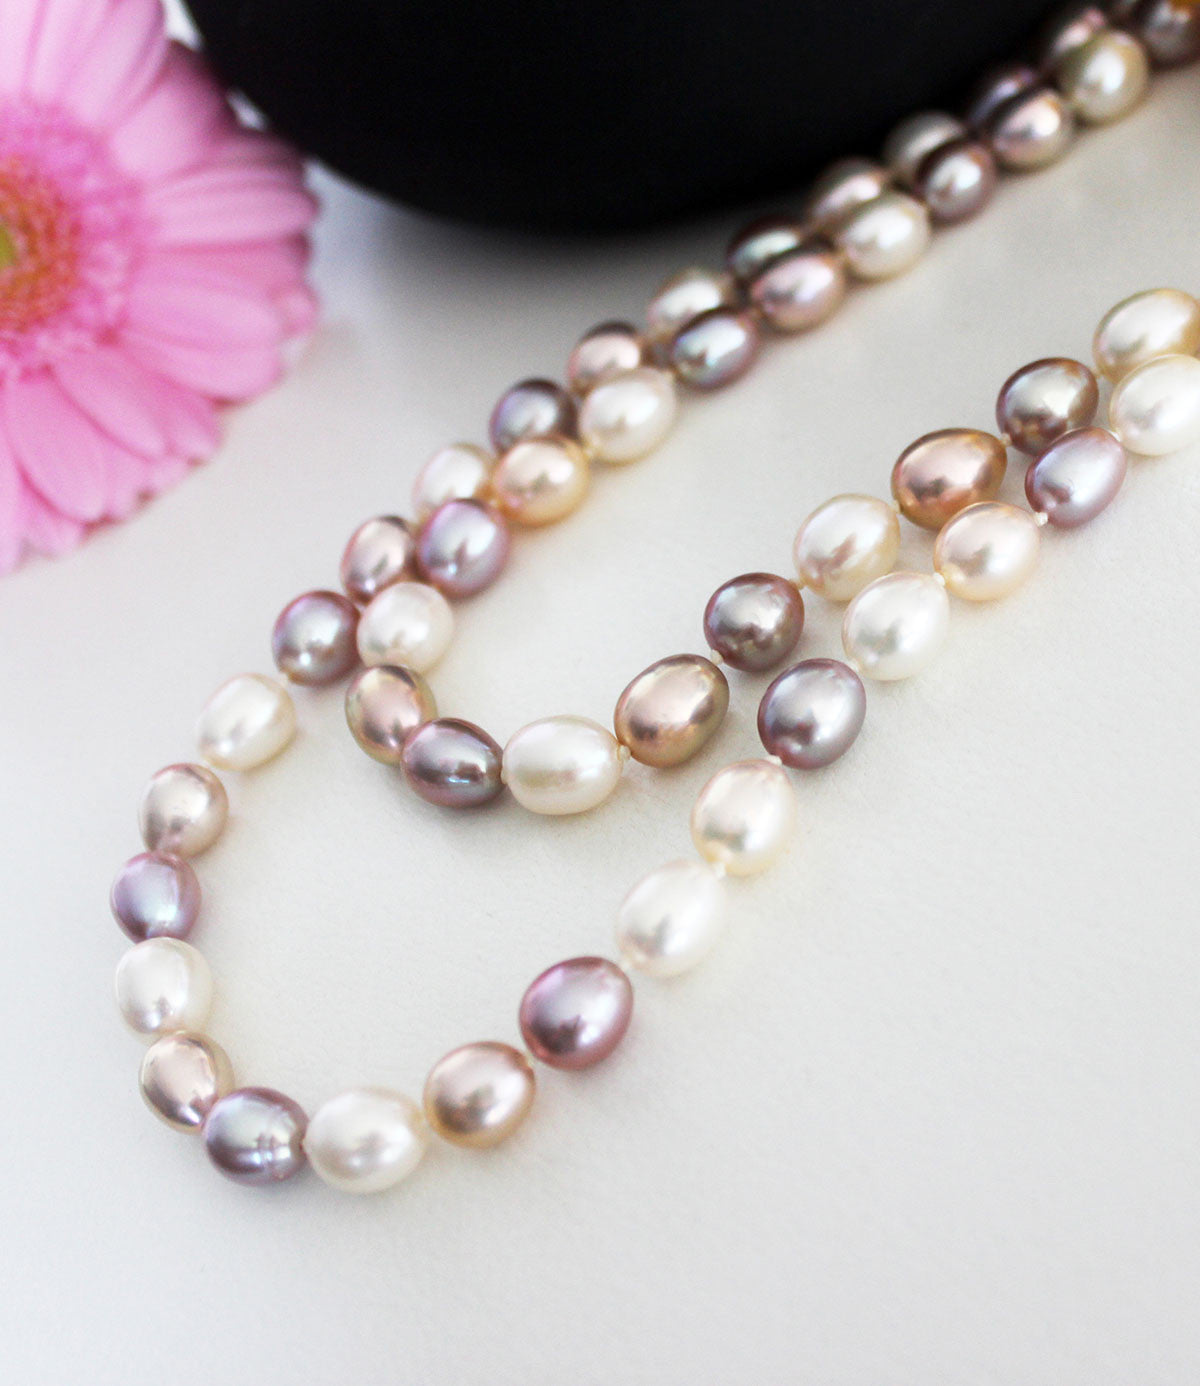 tahitian lfrank necklace products pearl pearlnecklacelong